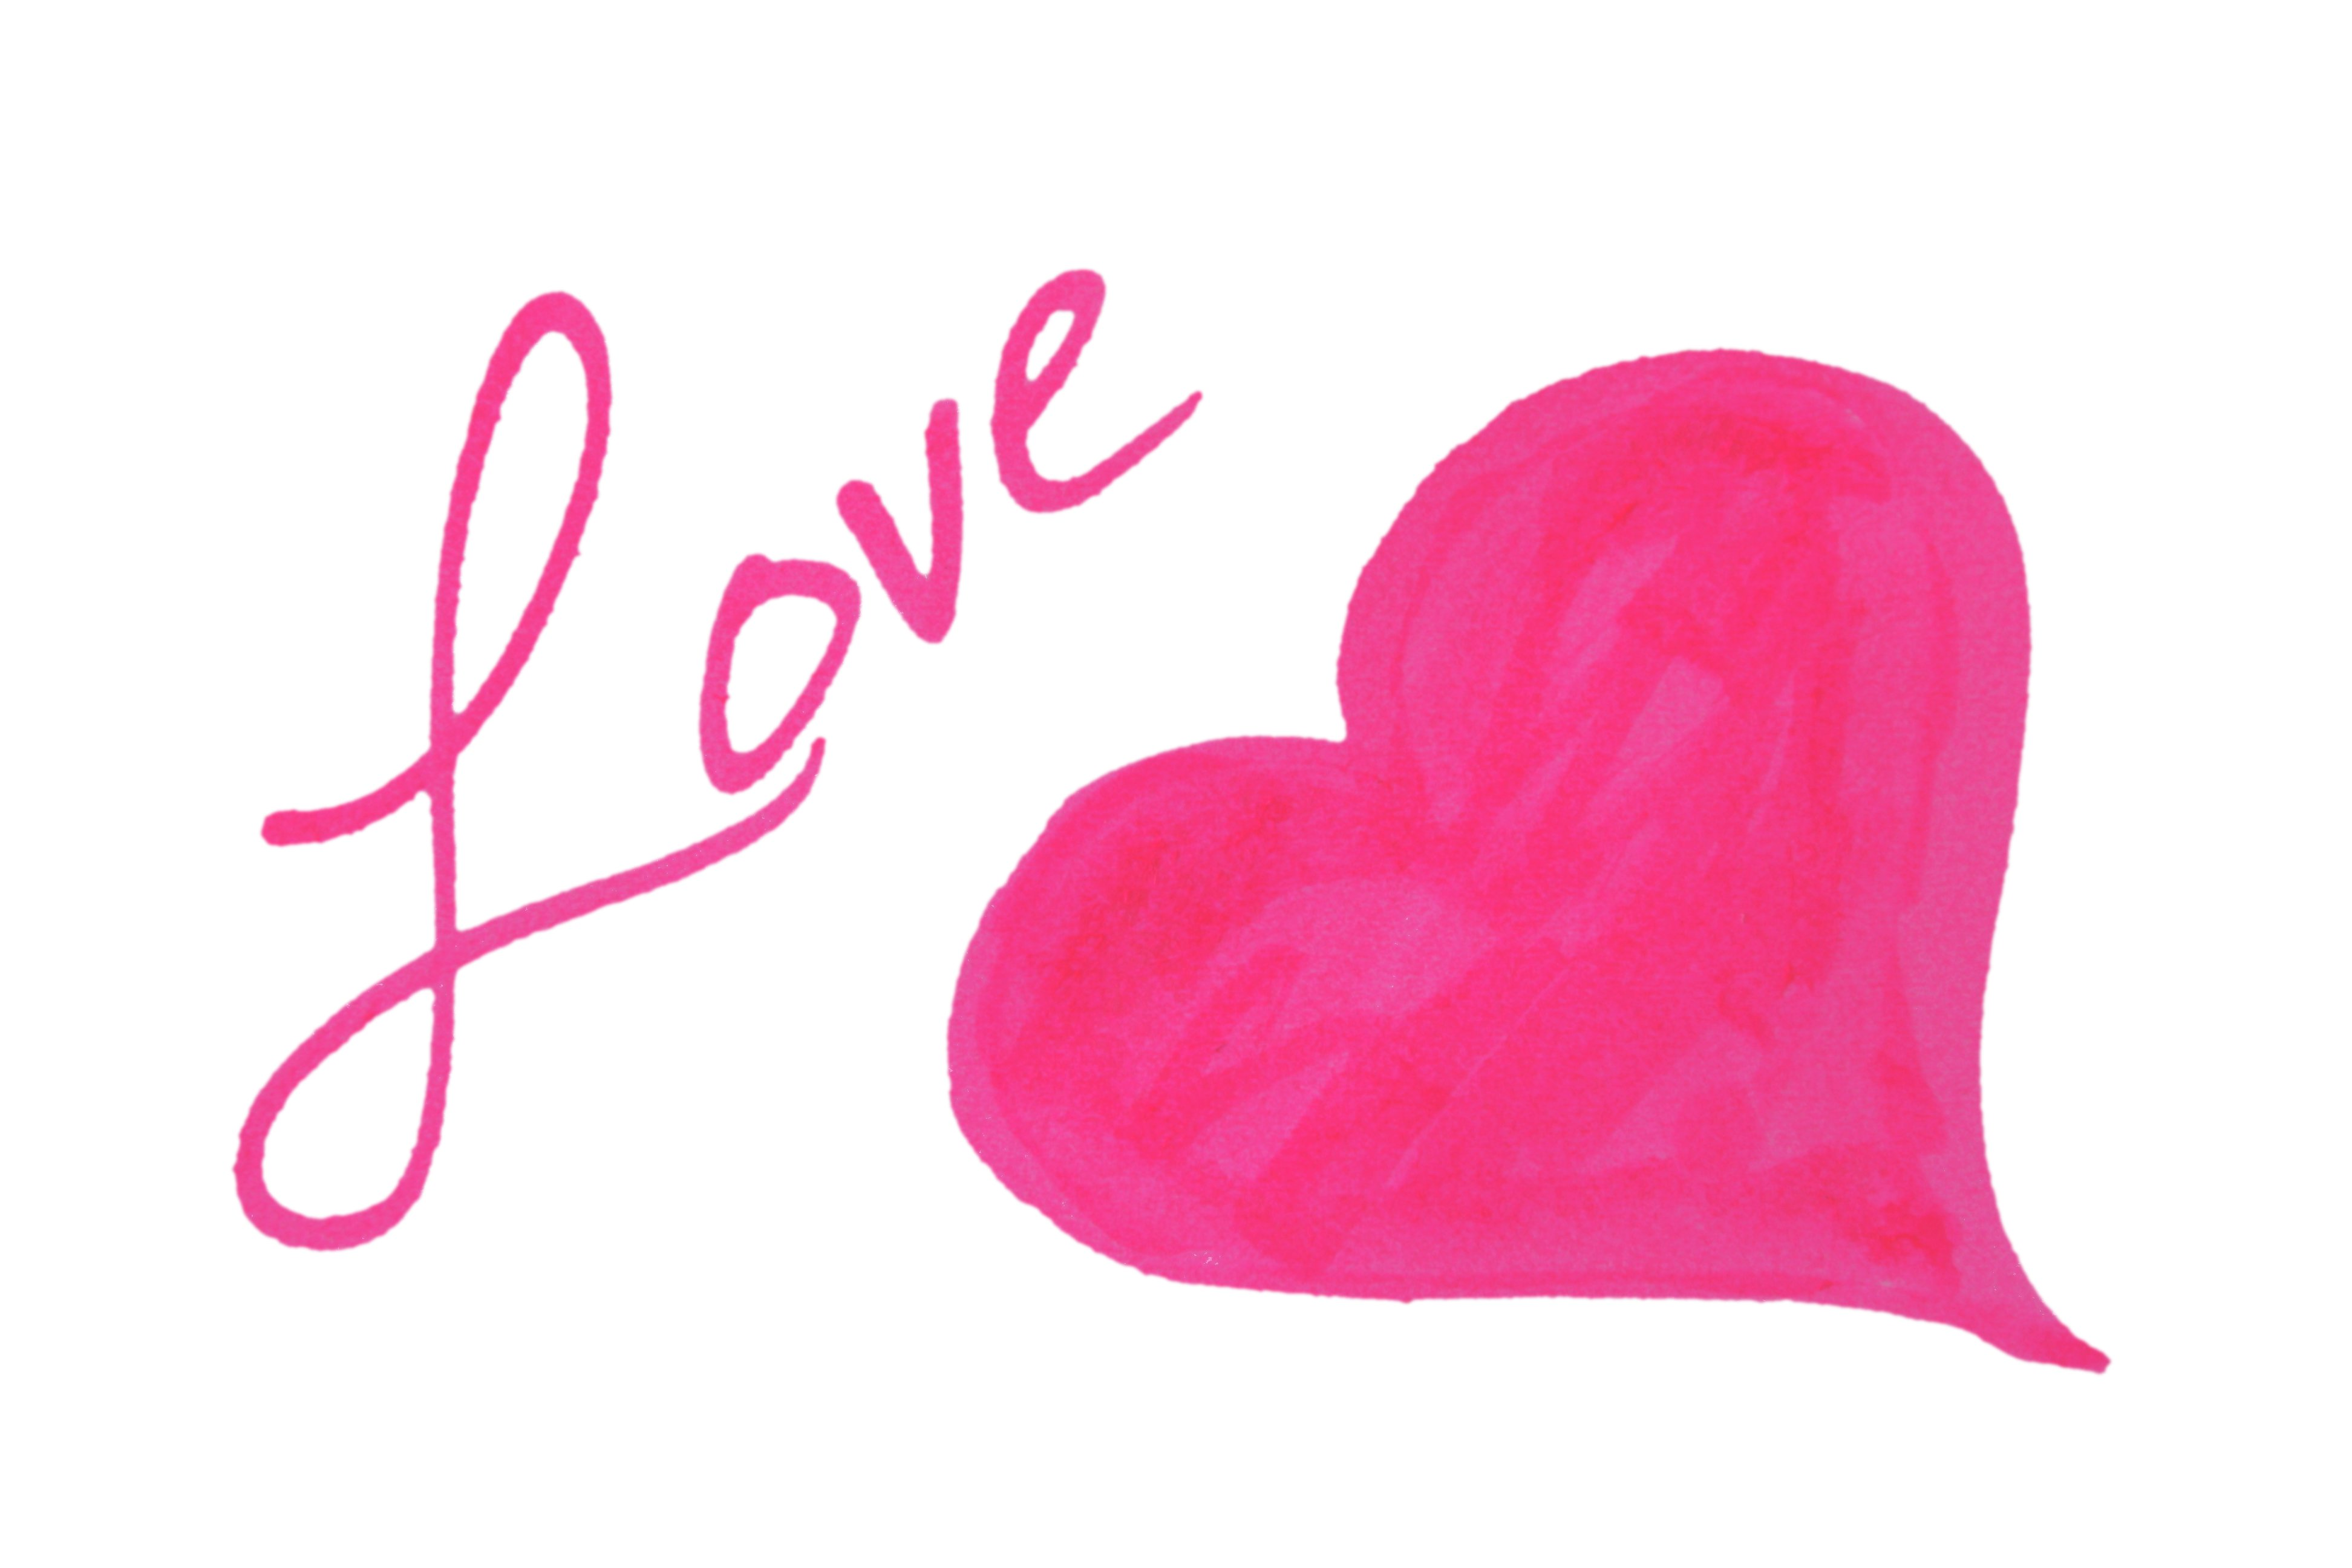 3888x2592 Hearts clip art pink heart free clipart images